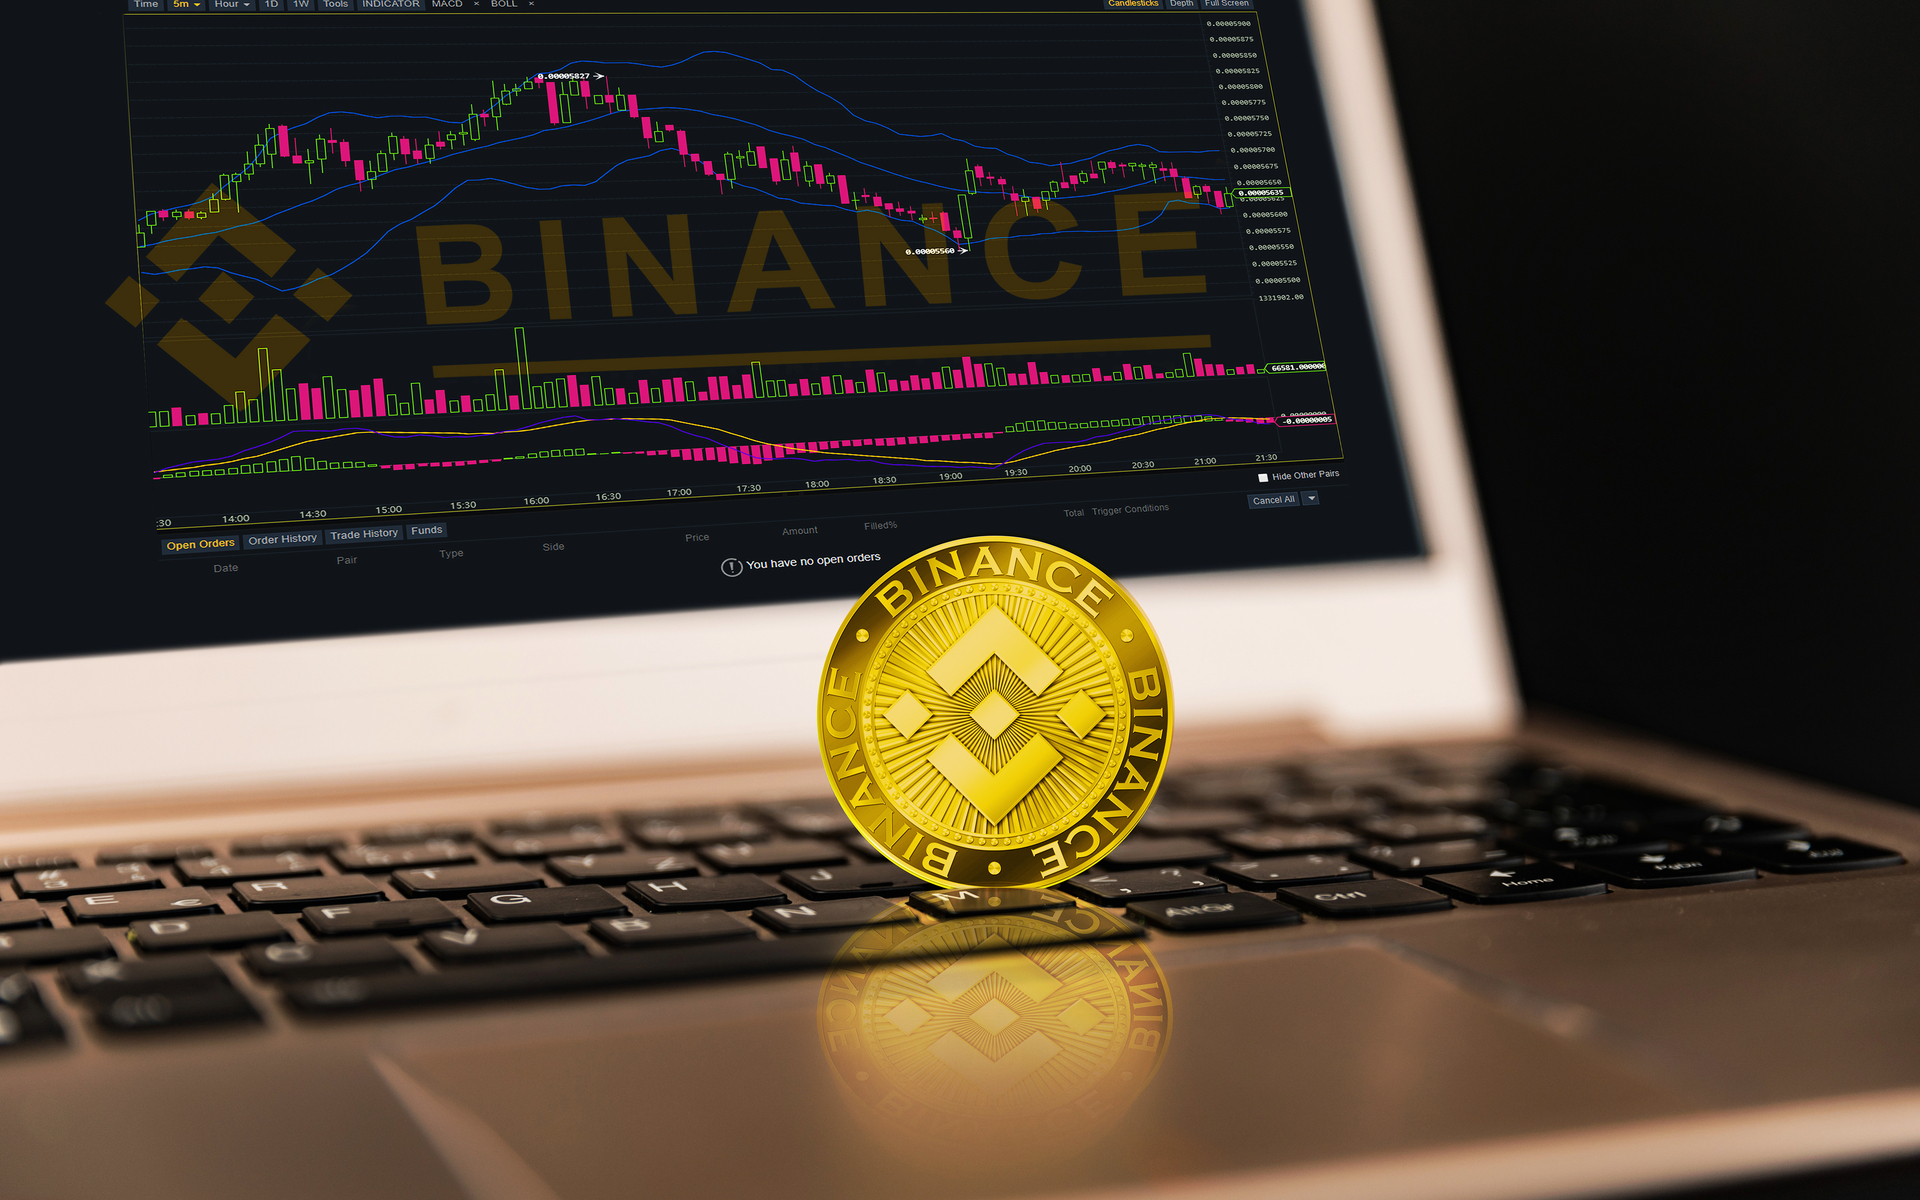 Binance Coin Becomes First Crypto to Surpass January '18 All-Time High